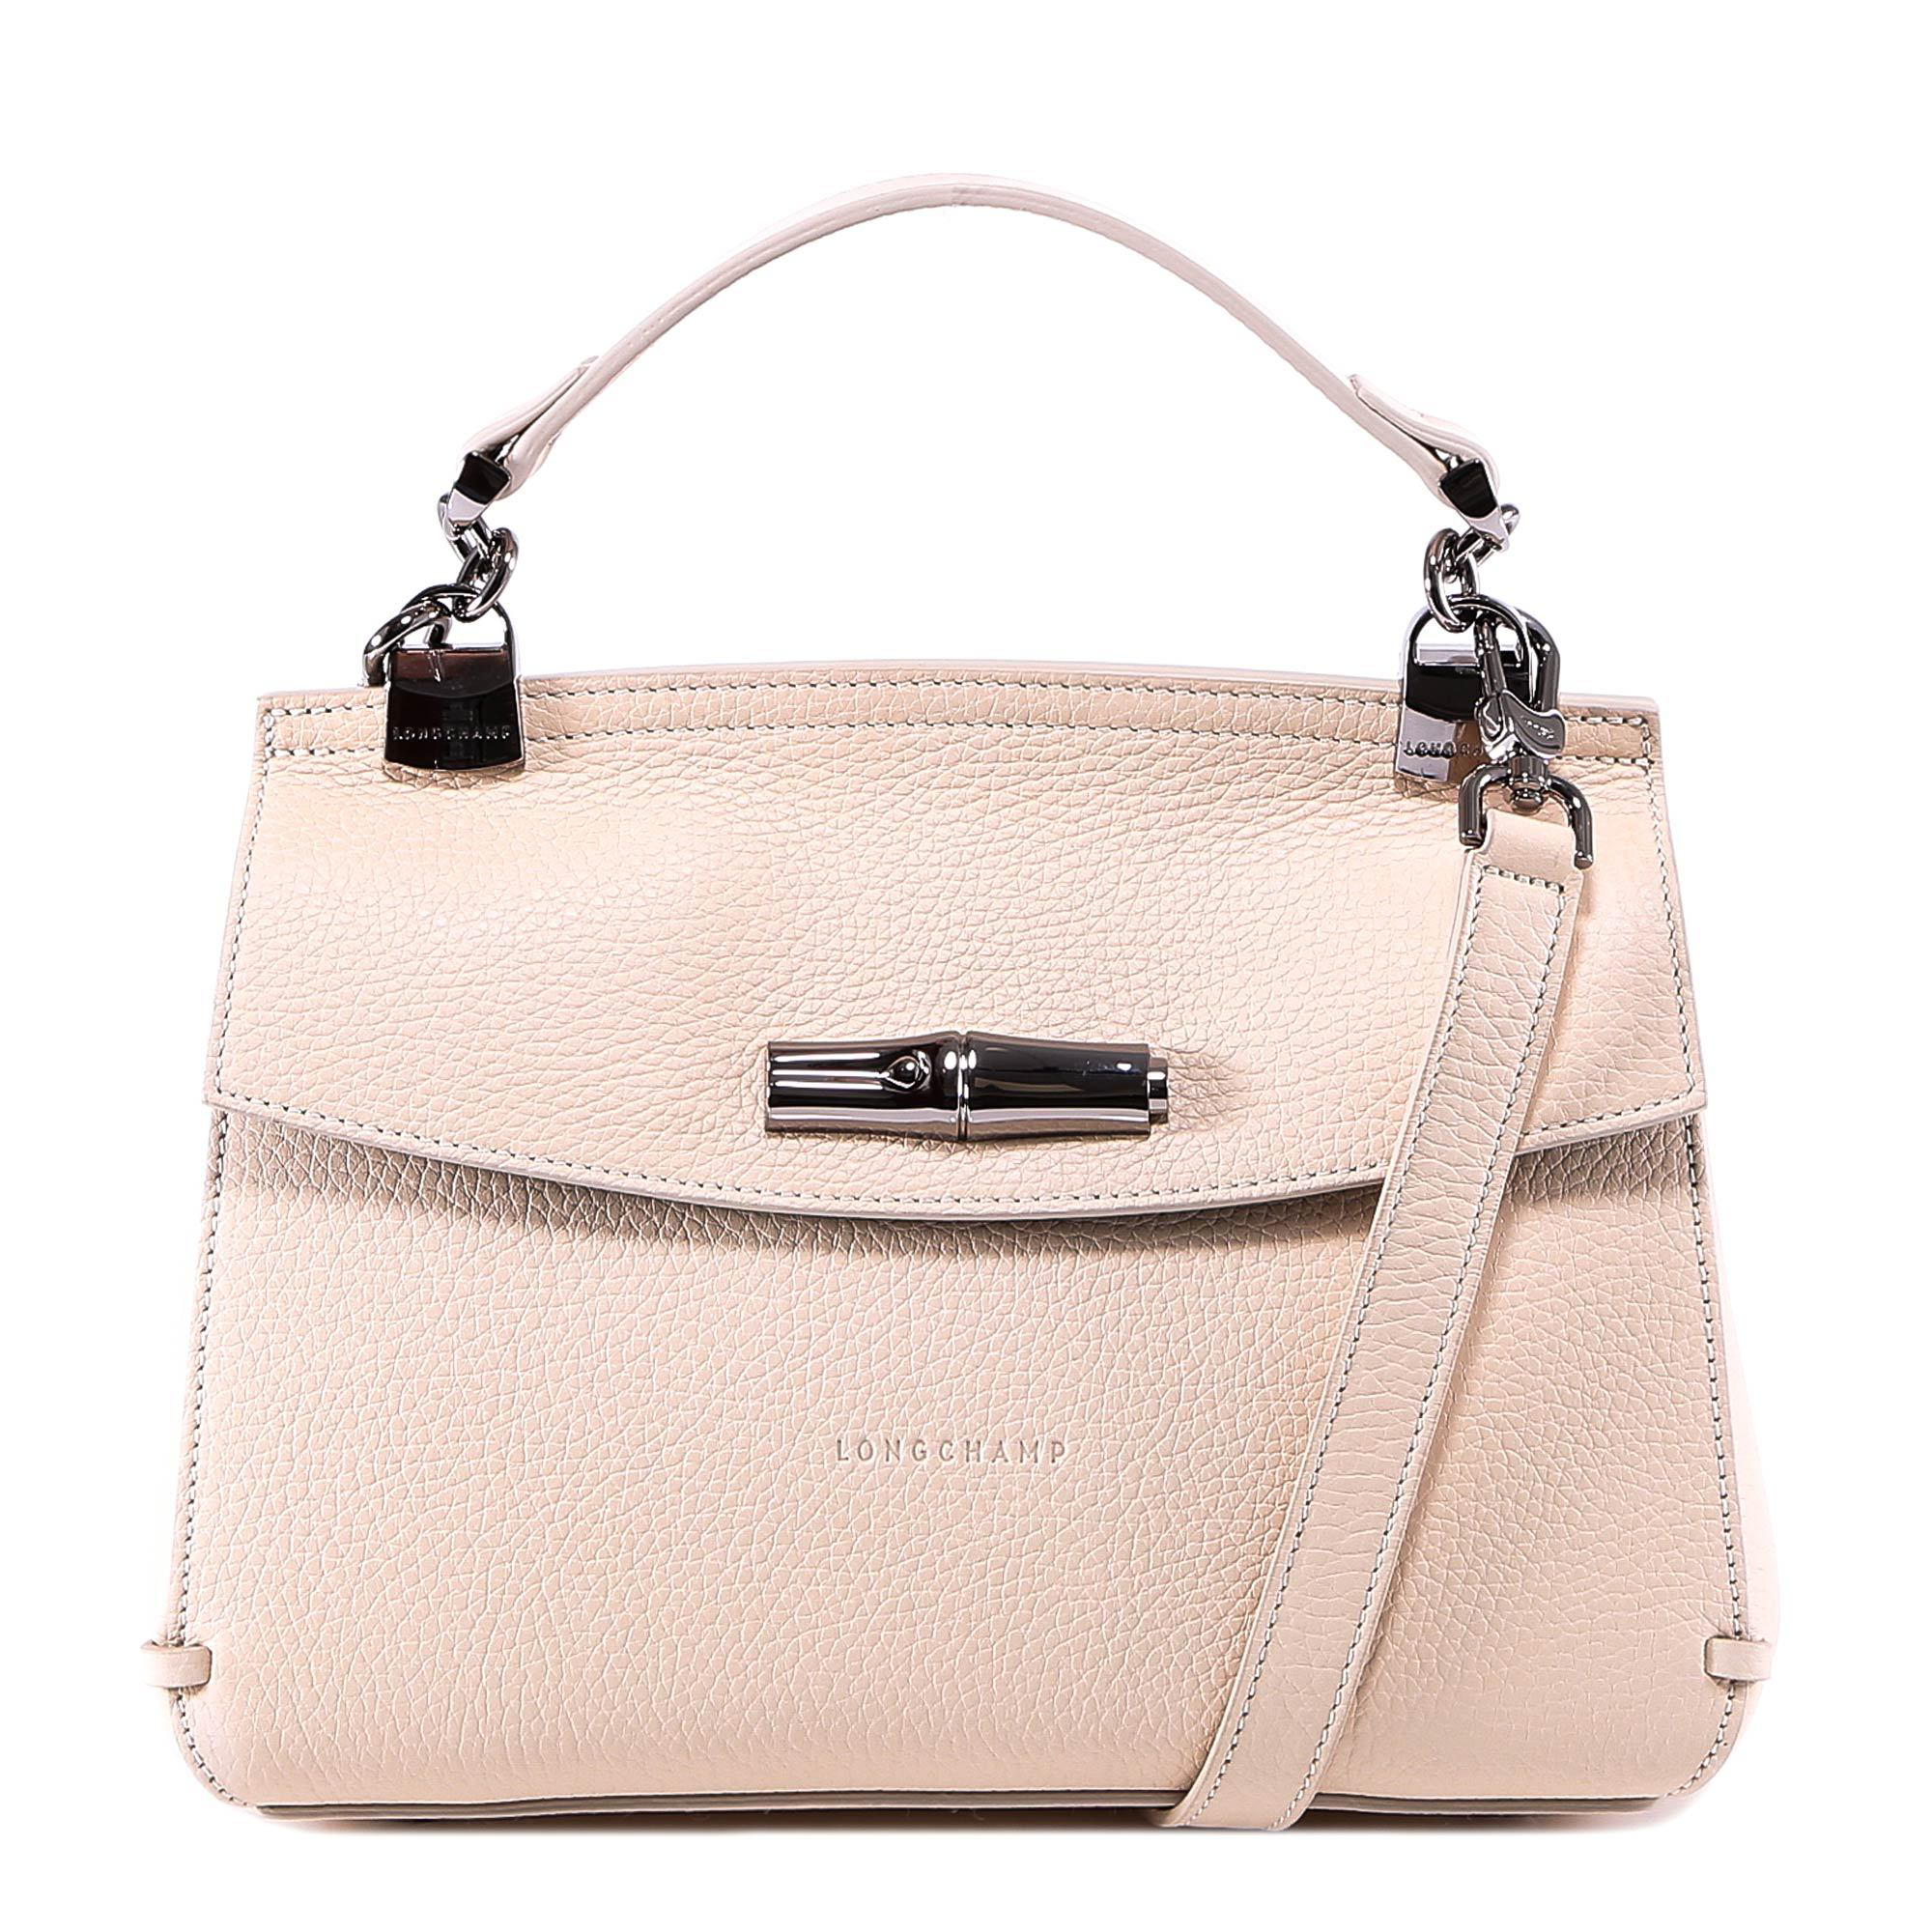 Longchamp Madeleine Tote Bag In Beige. CETTIRE 80fedfad36298